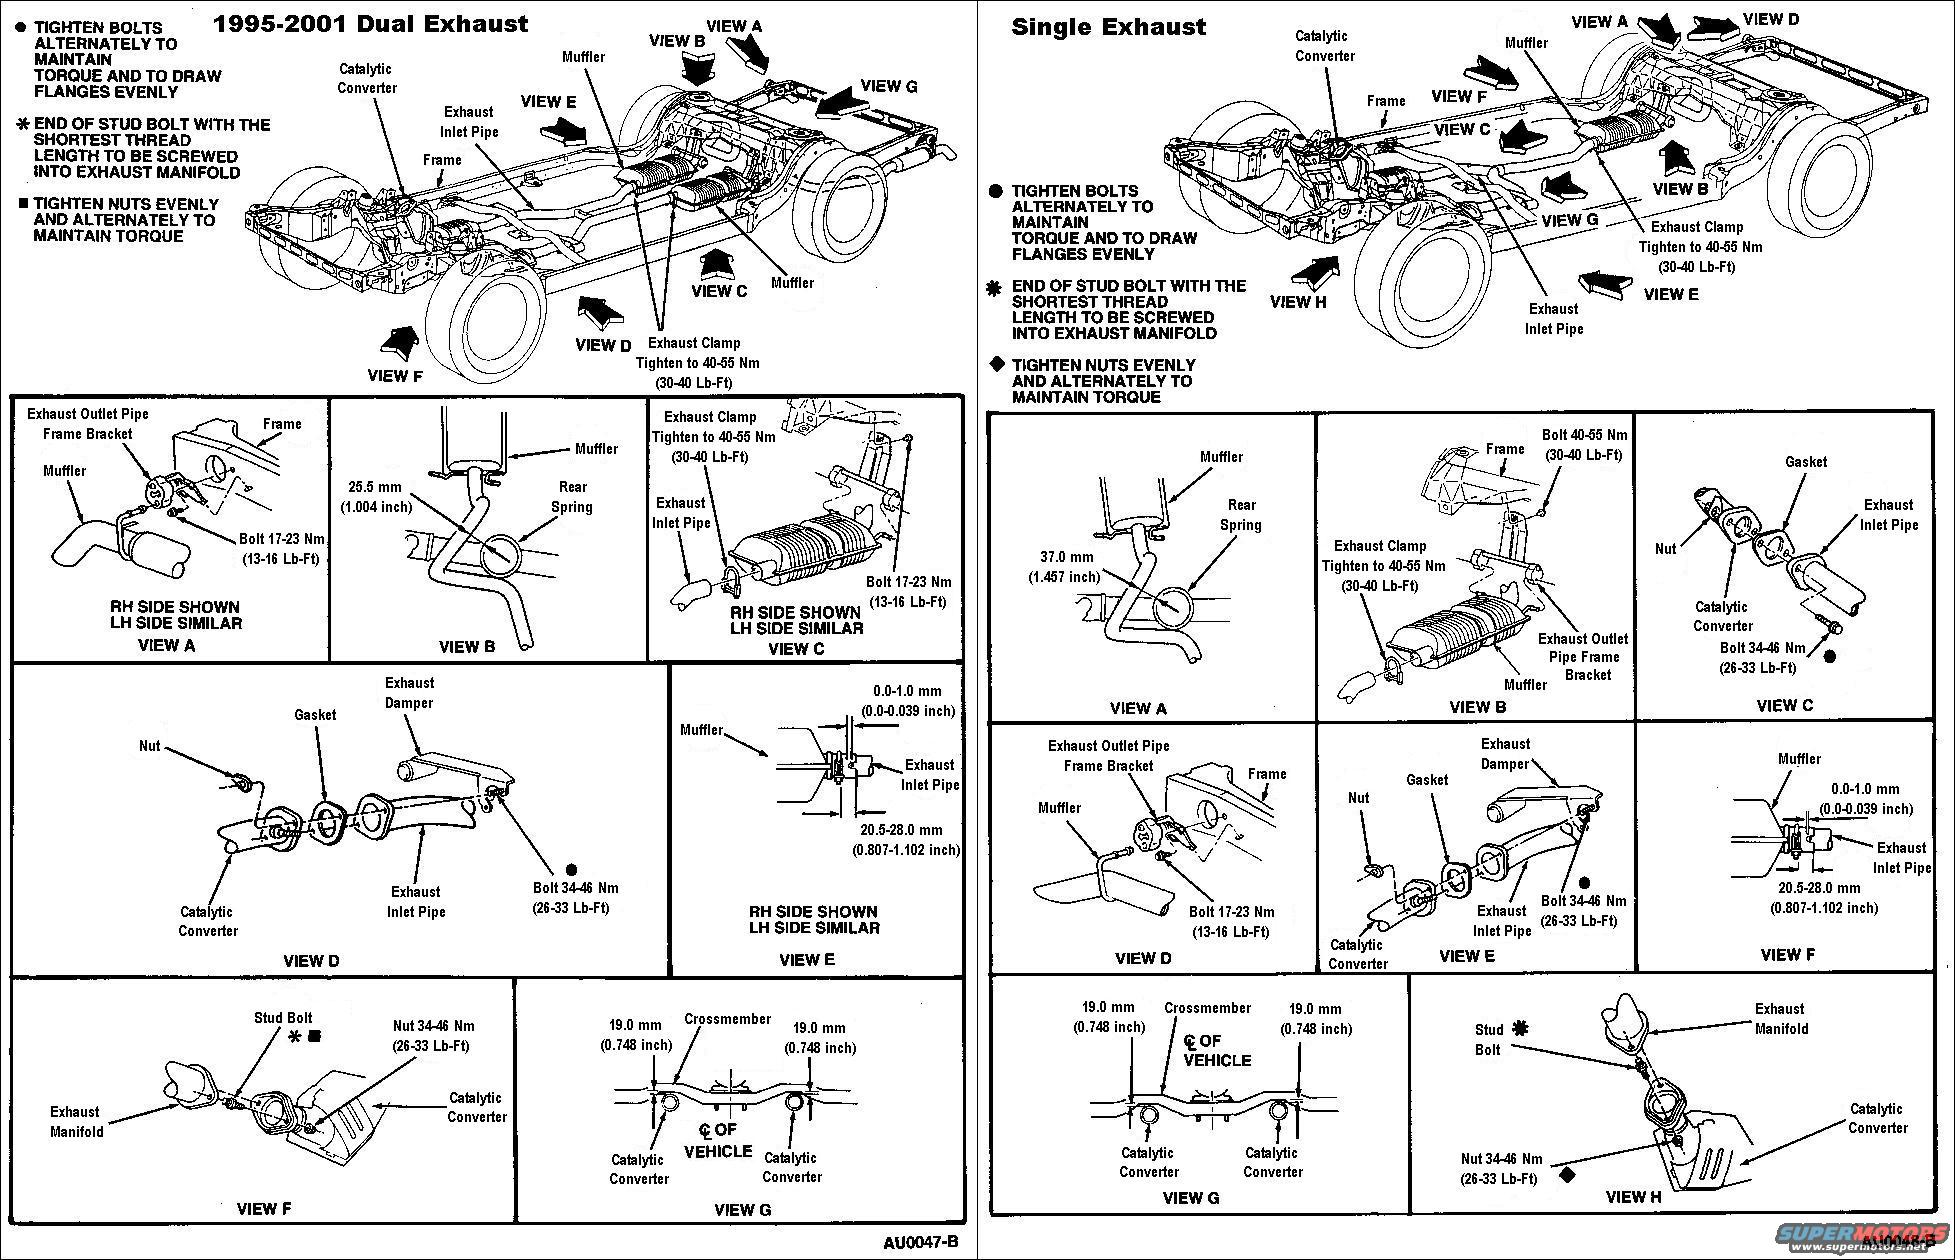 2002 Crown Victoria Fuse Diagram Wiring Library Ford Sport Trac Residential Electrical Symbols U2022 2009 Dodge Grand Caravan